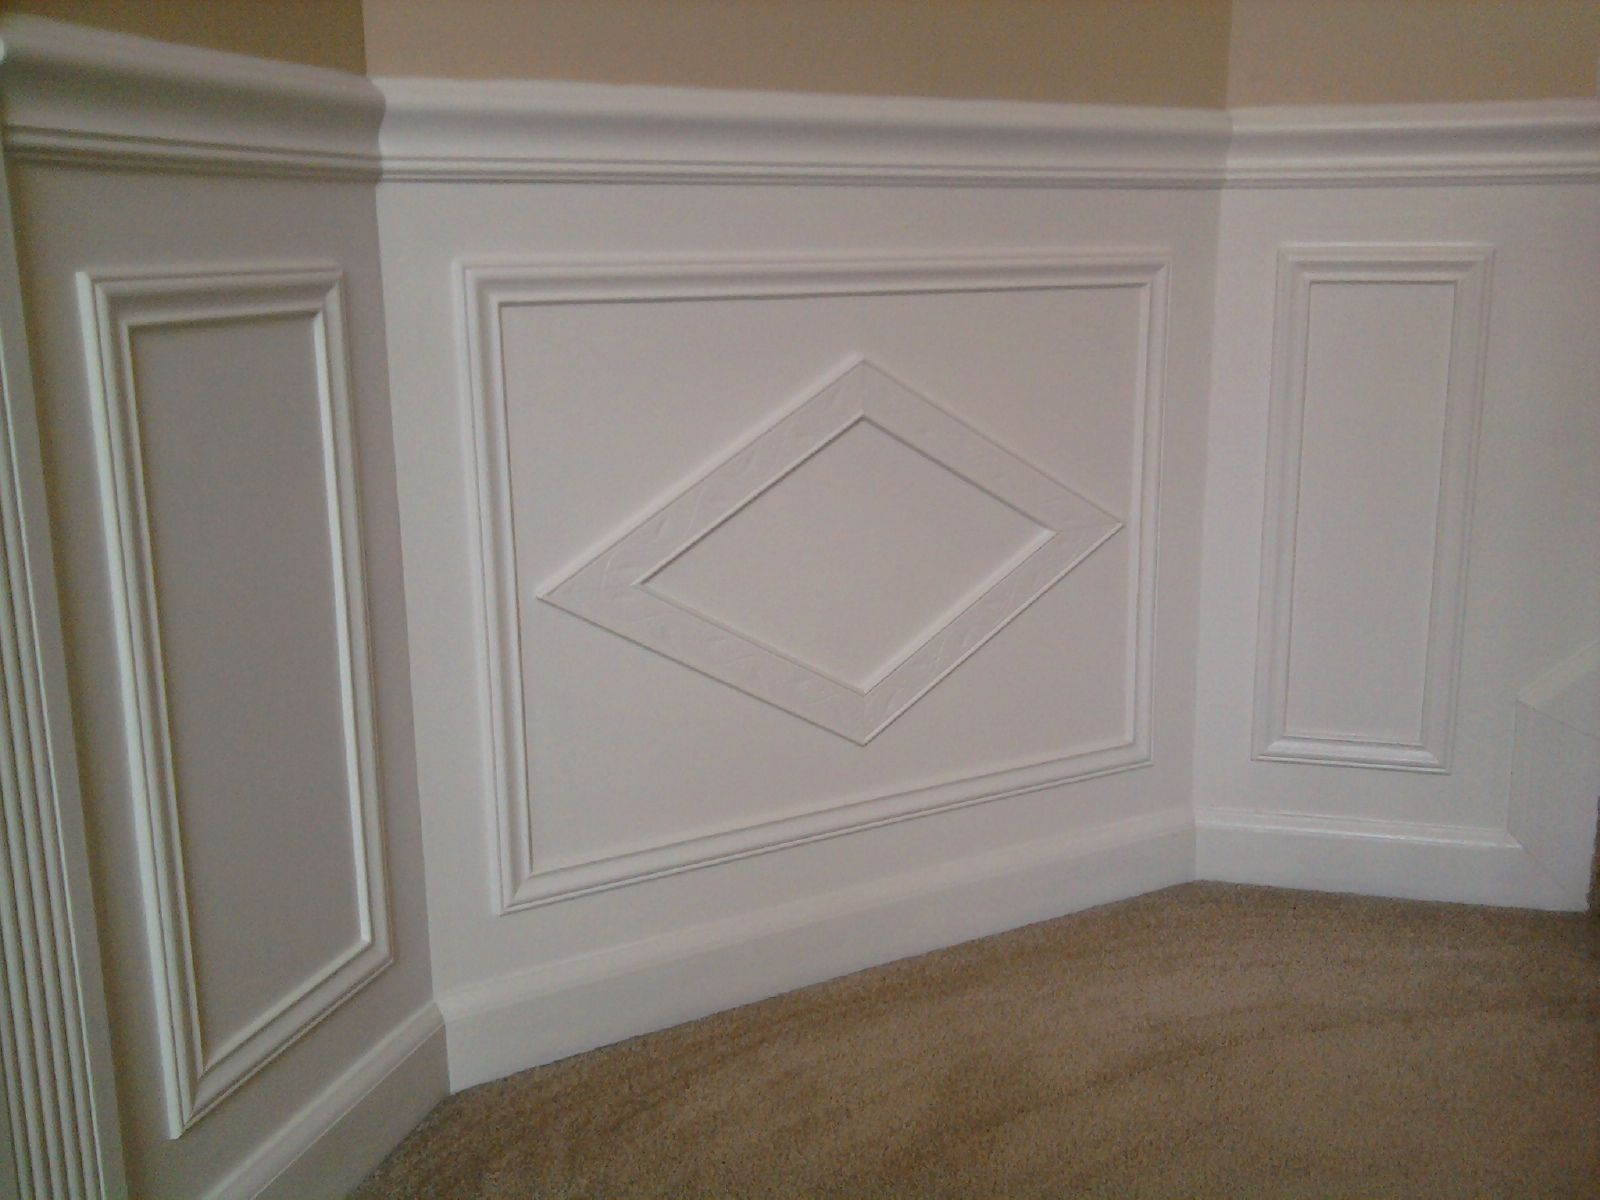 How to cut base molding around wall vent - Trim Work Design Tips From Casing To Crown Molding All About The House